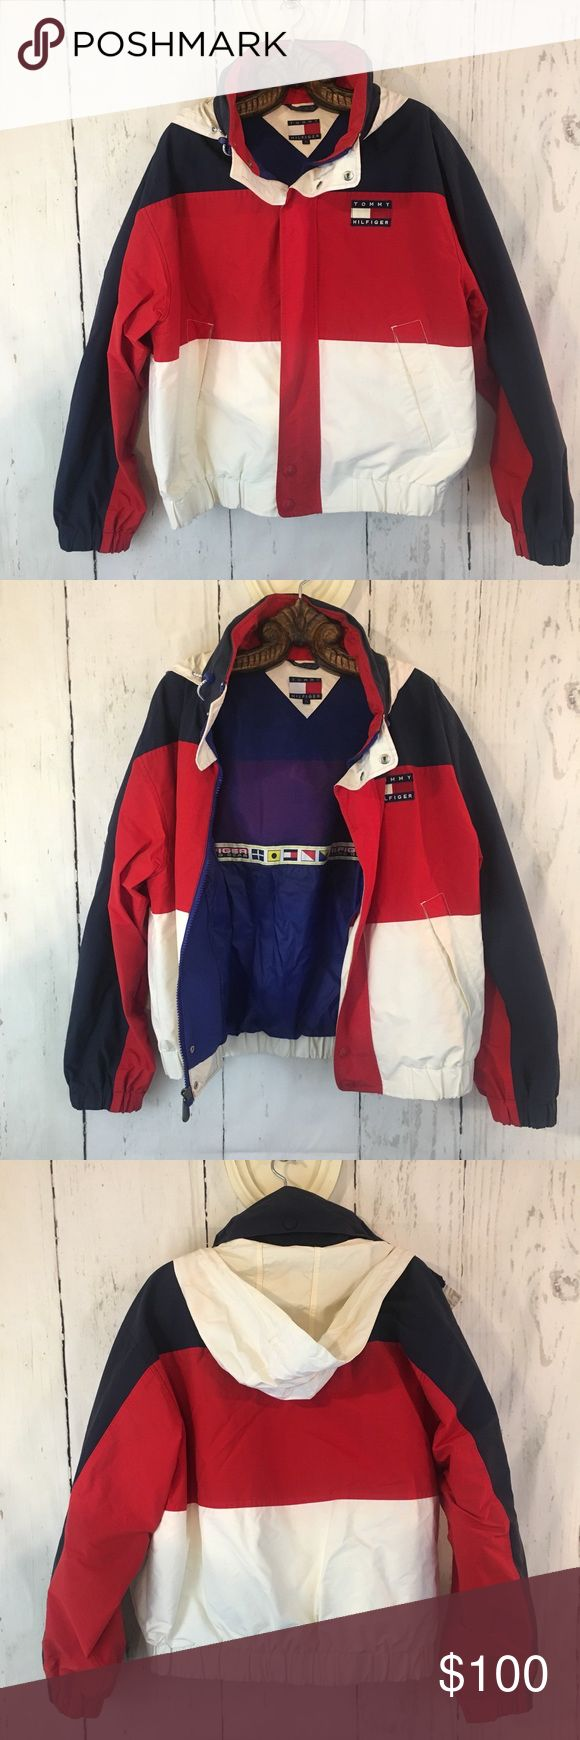 Tommy Hilfiger Jacket Tommy Hilfiger Red, White, and Blue Sailing Jacket. Pre-Owned. Has A Few Stains. See Last 2 Pictures. White Part Has Slightly Yellowed. Red Has Bled A Bit On White On The Front. Not Noticeable Unless Looking For It. 7/10 For Condition. Not A Light Windbreaker. Definitely A Thicker Jacket. Size Large. Tommy Hilfiger Jackets & Coats